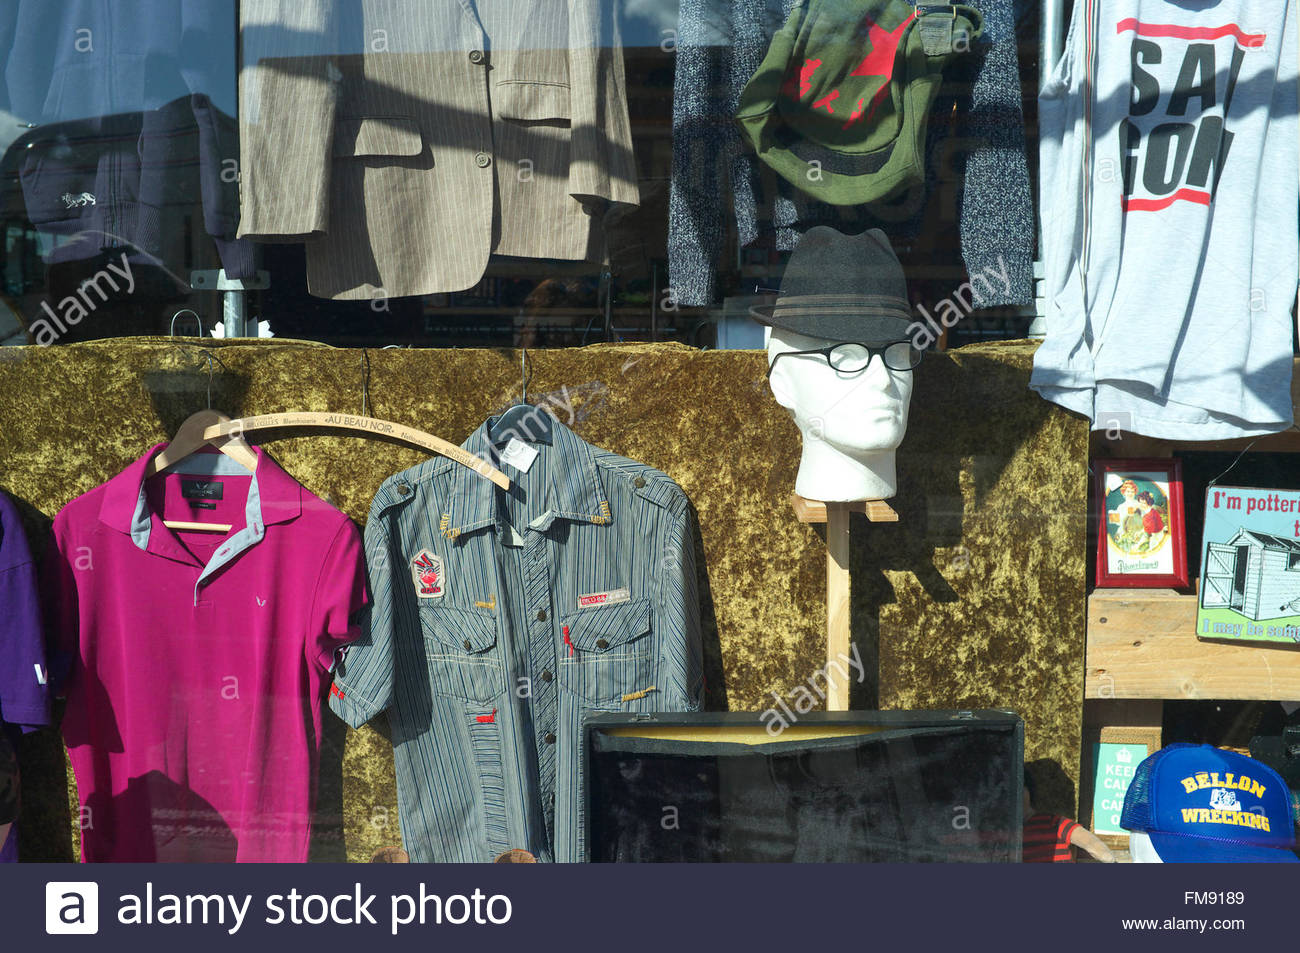 Second Hand Clothes Sale Stock Photos & Second Hand Clothes Sale ...